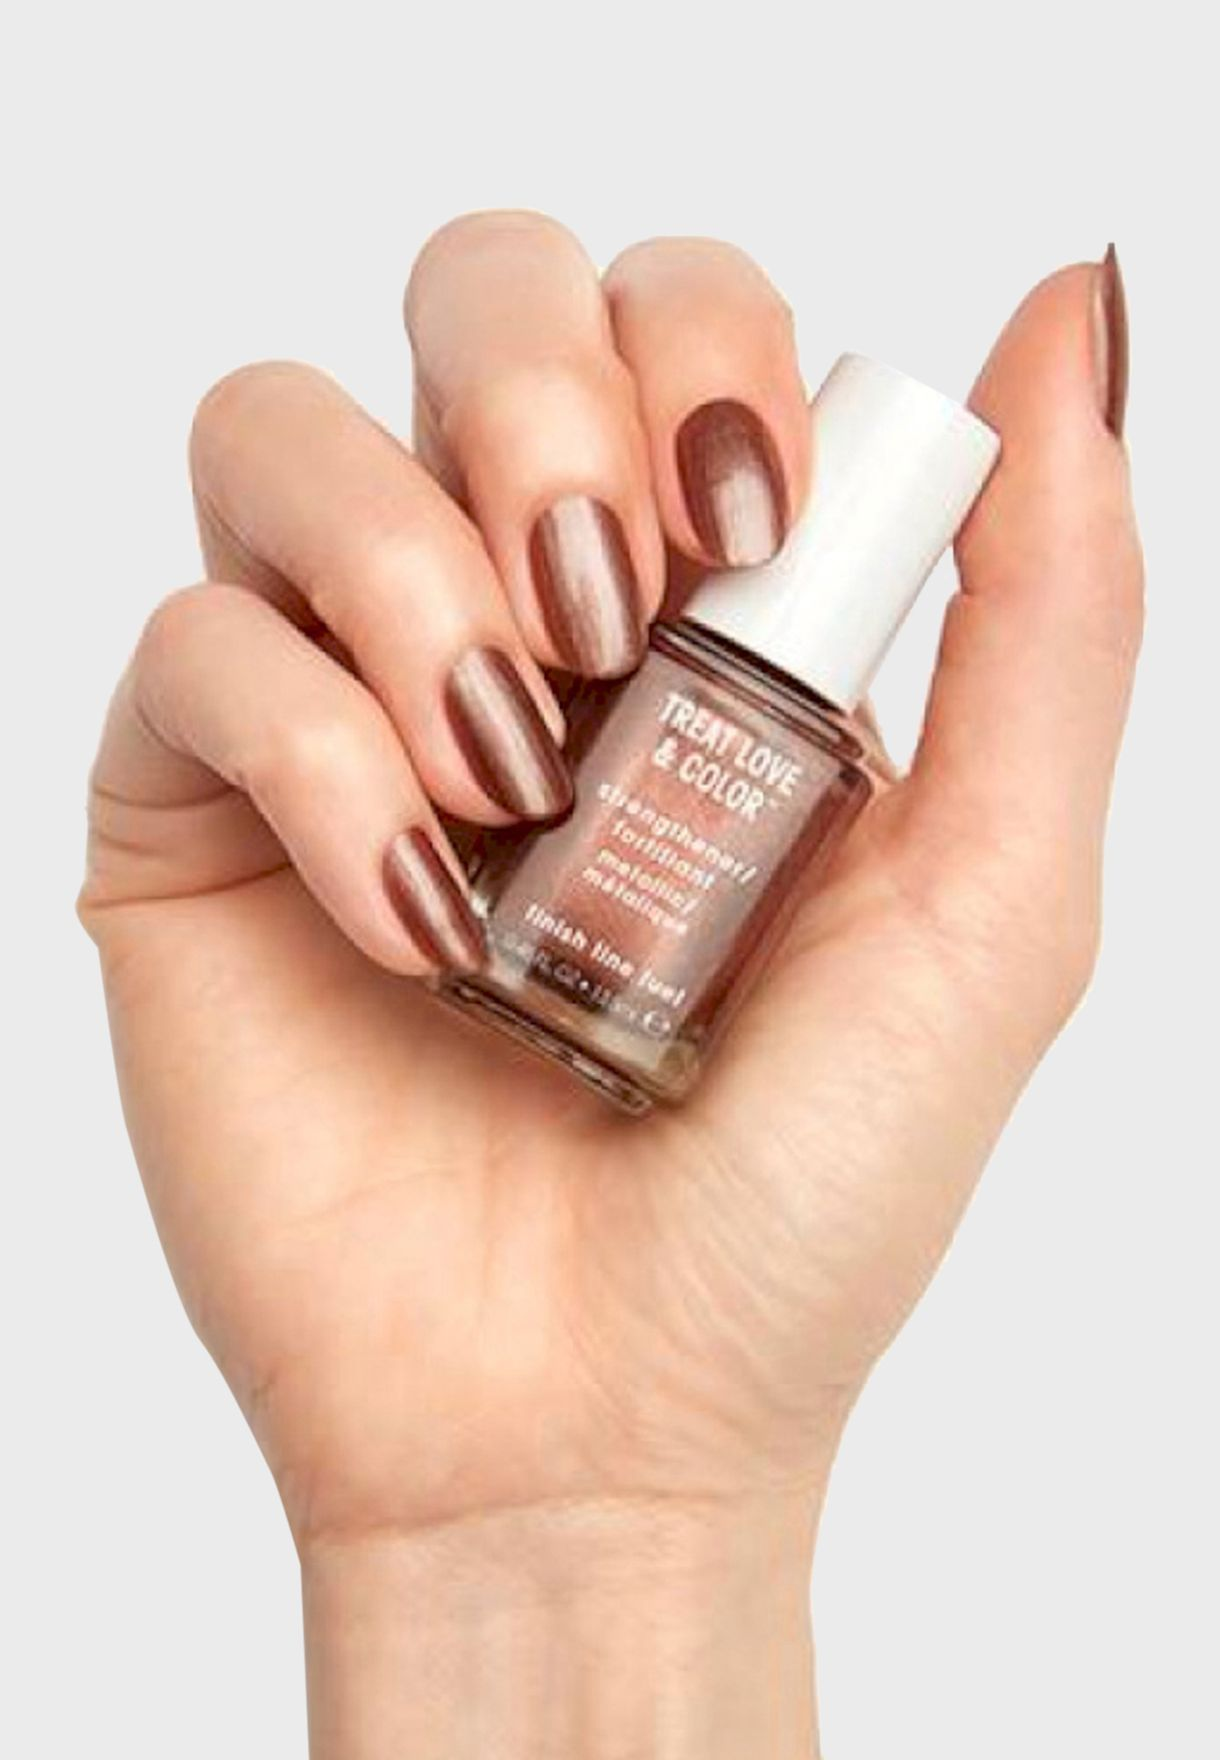 Strengthening Nail Polish - Finish Line Fuel